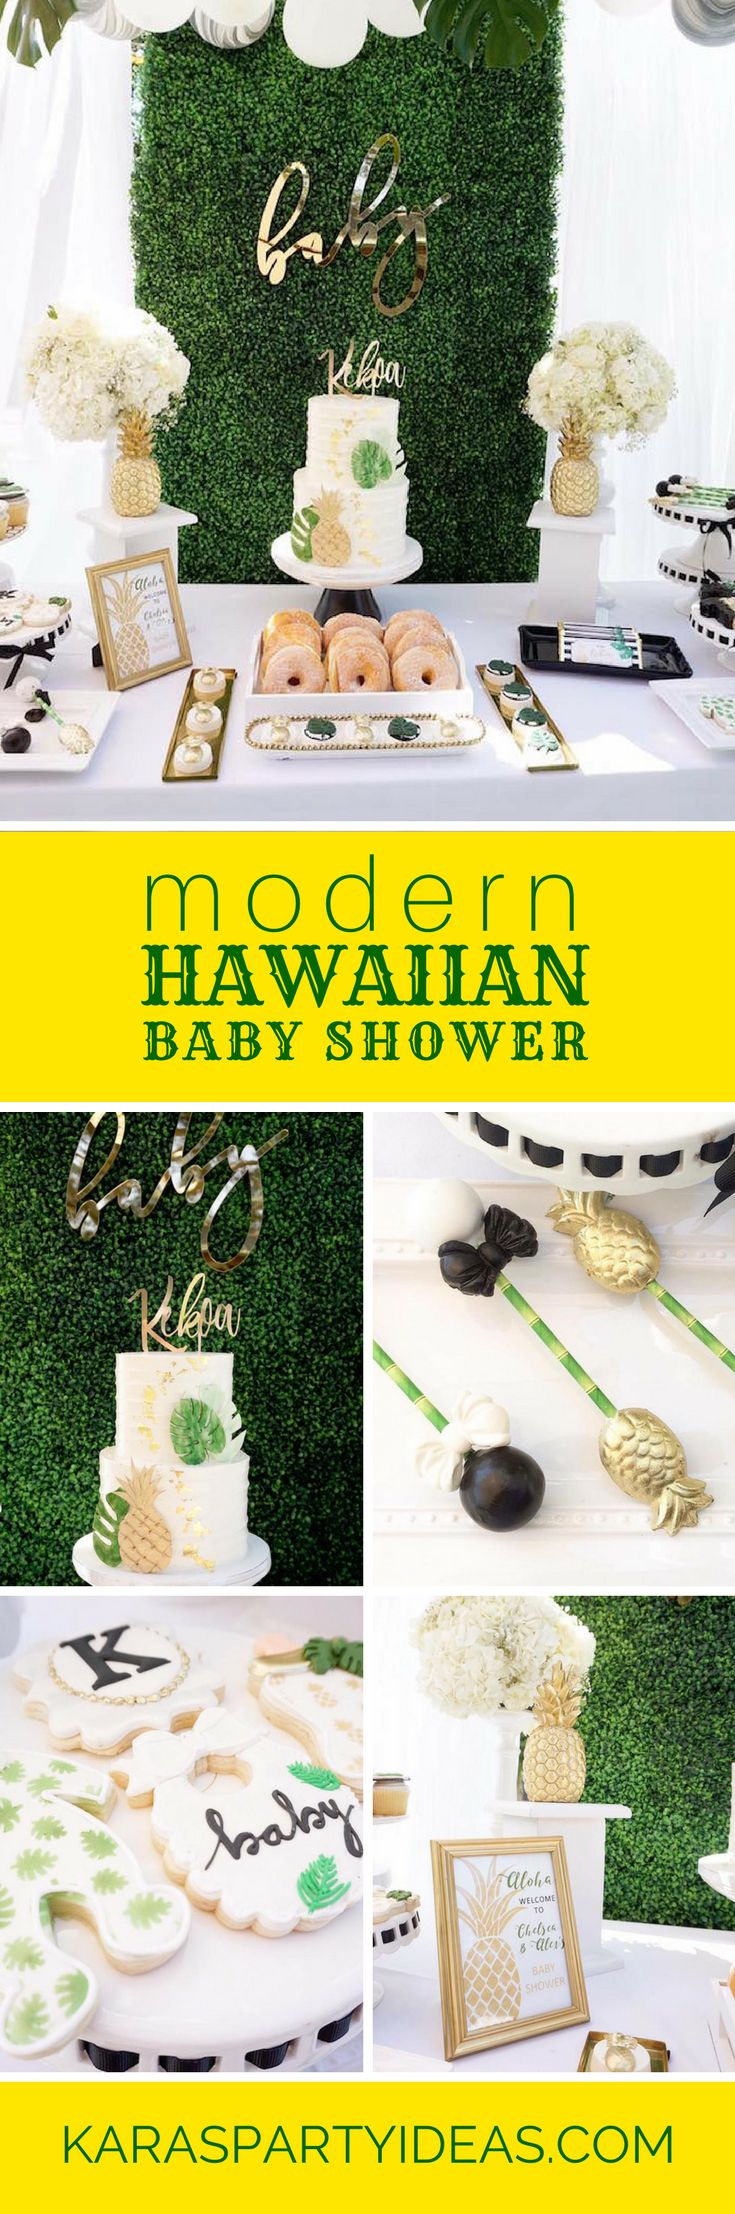 Modern Hawaiian Baby Shower via Kara's Party Ideas - KarasPartyIdeas.com